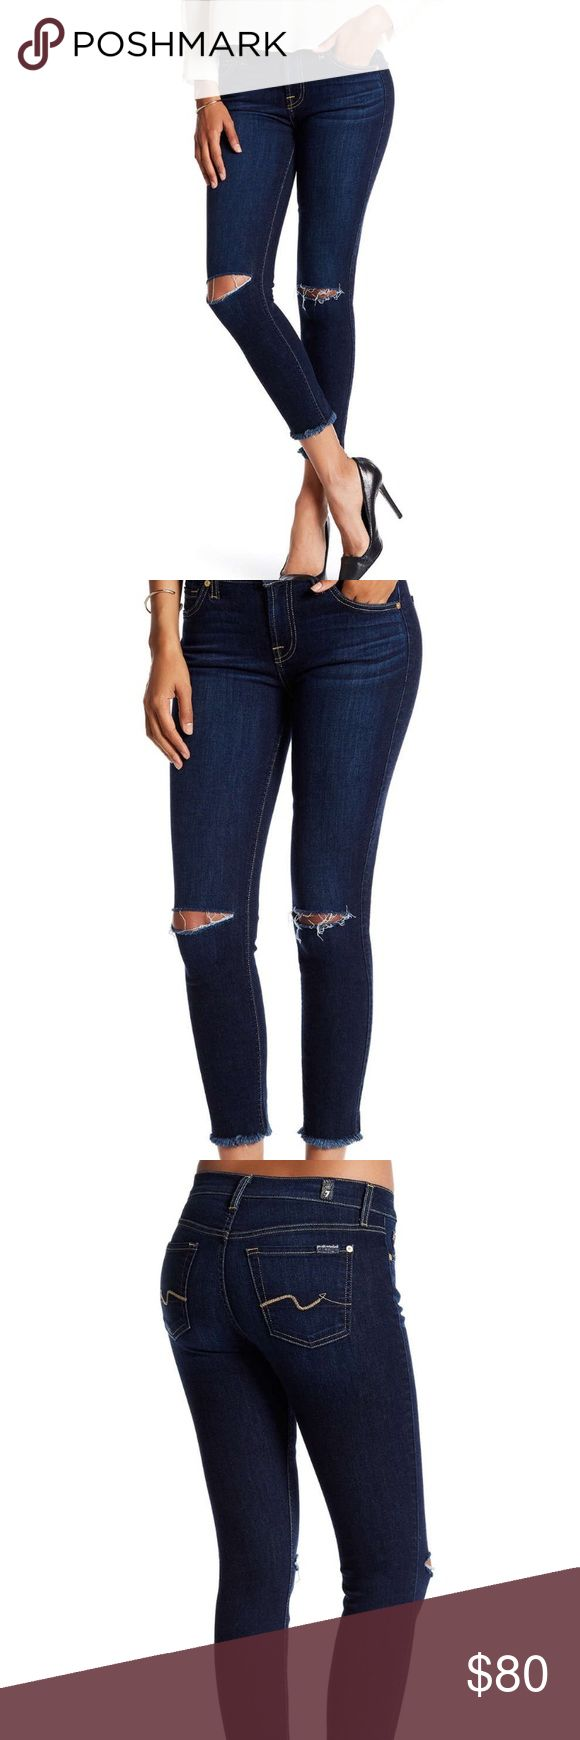 NWOT!! 7 for all mankind jeans ! Brand new! Never worn! 7 for all mankind jeans! Ankle gwenevere jeans! Size 27! Zip fly, with button closure. 5 pocket construction. Slit distressed knee, raw hem cuffs, ankle leg. 7 For All Mankind Jeans Ankle & Cropped